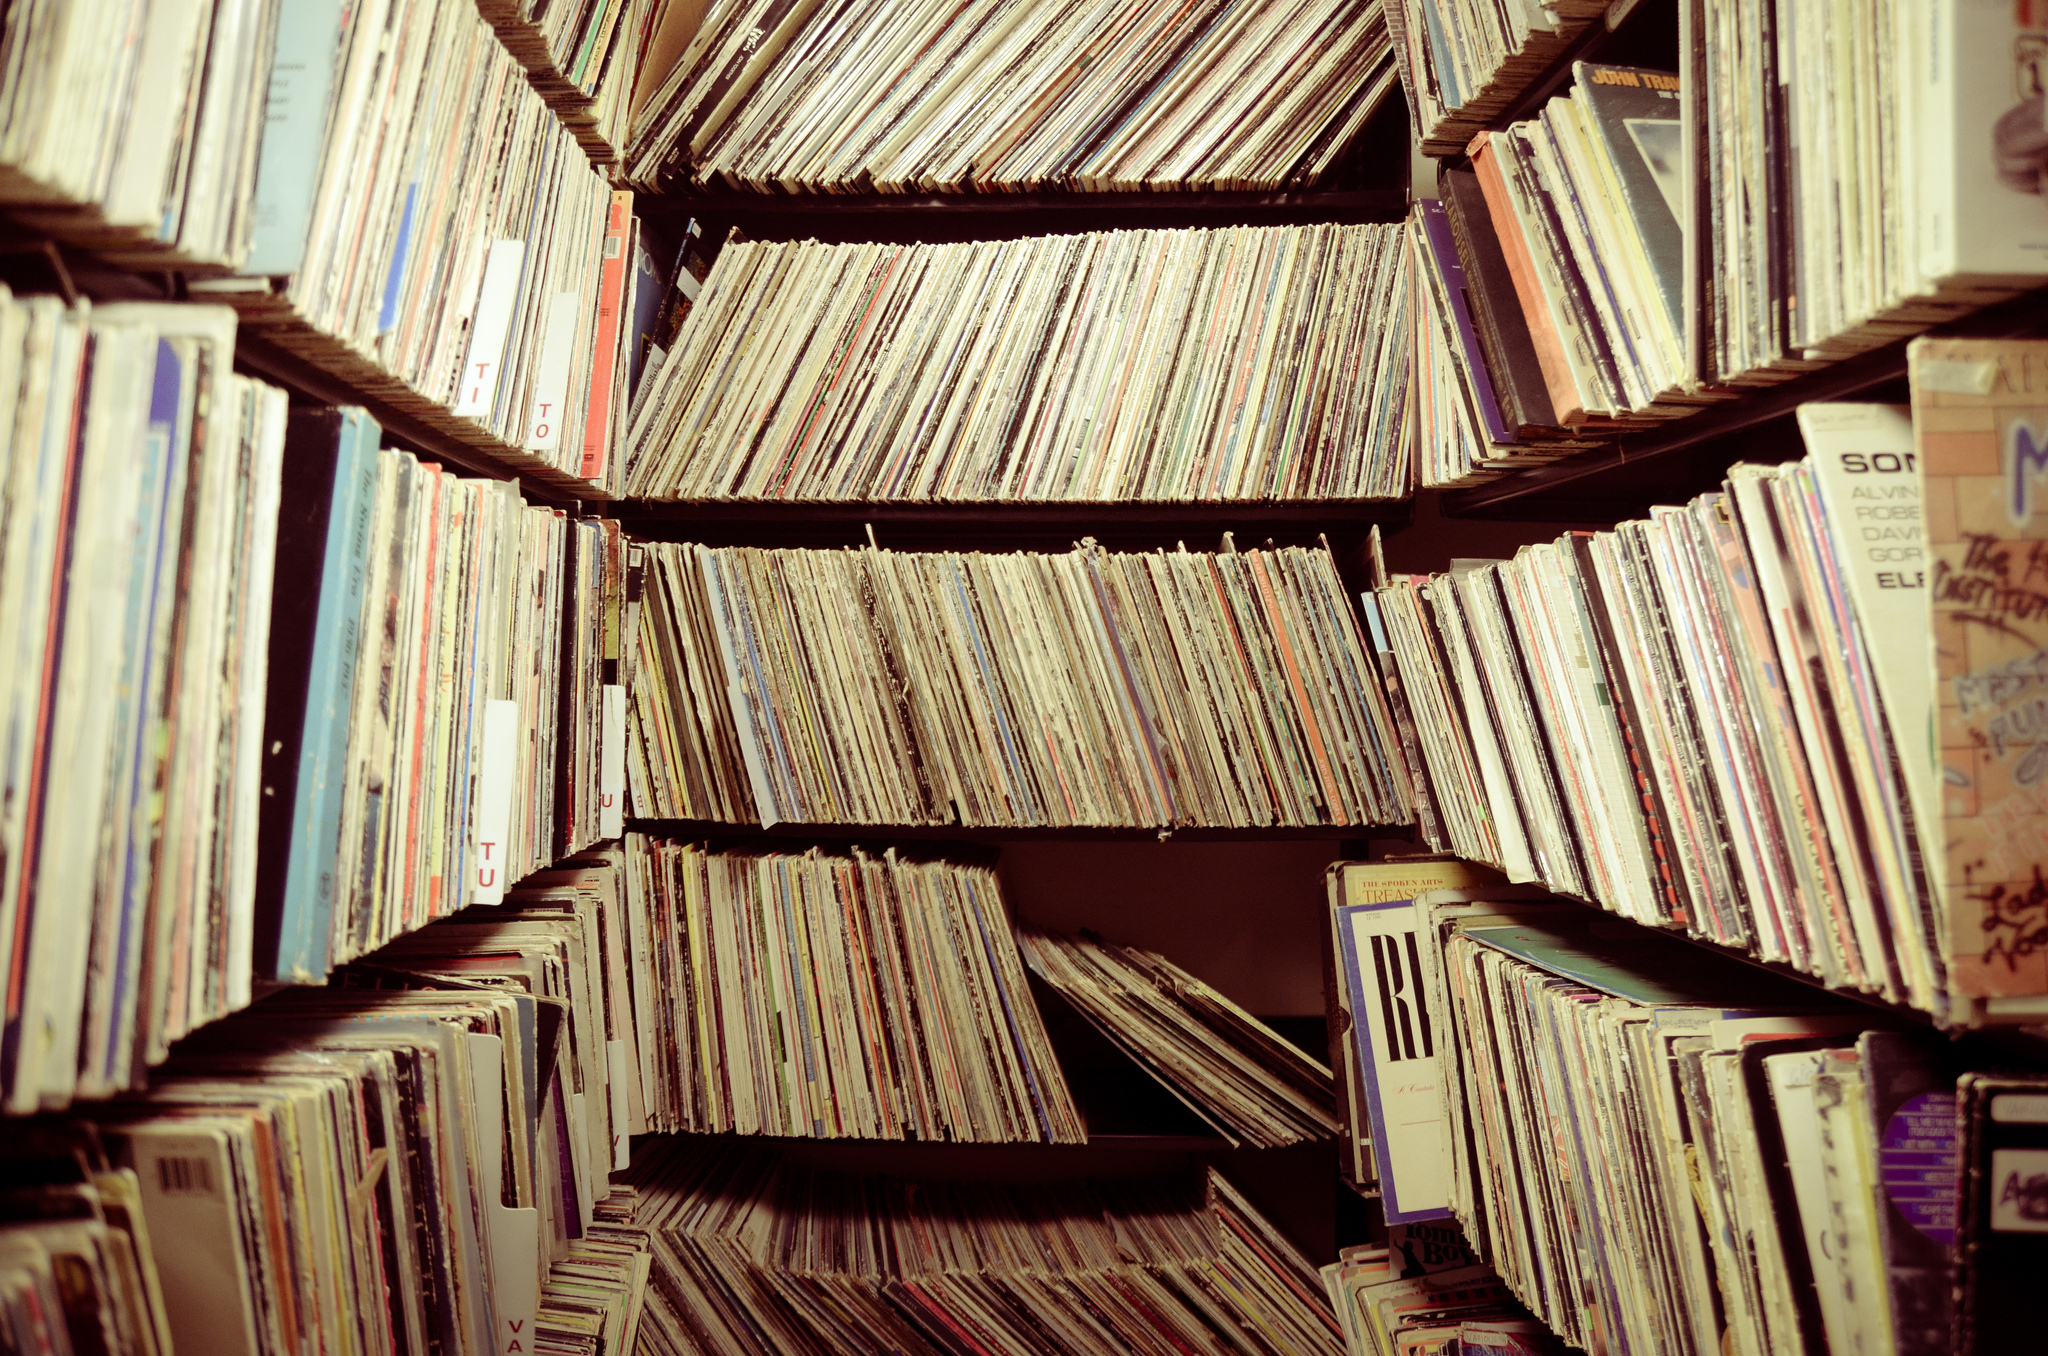 Records | © Will Folsom /Flickr